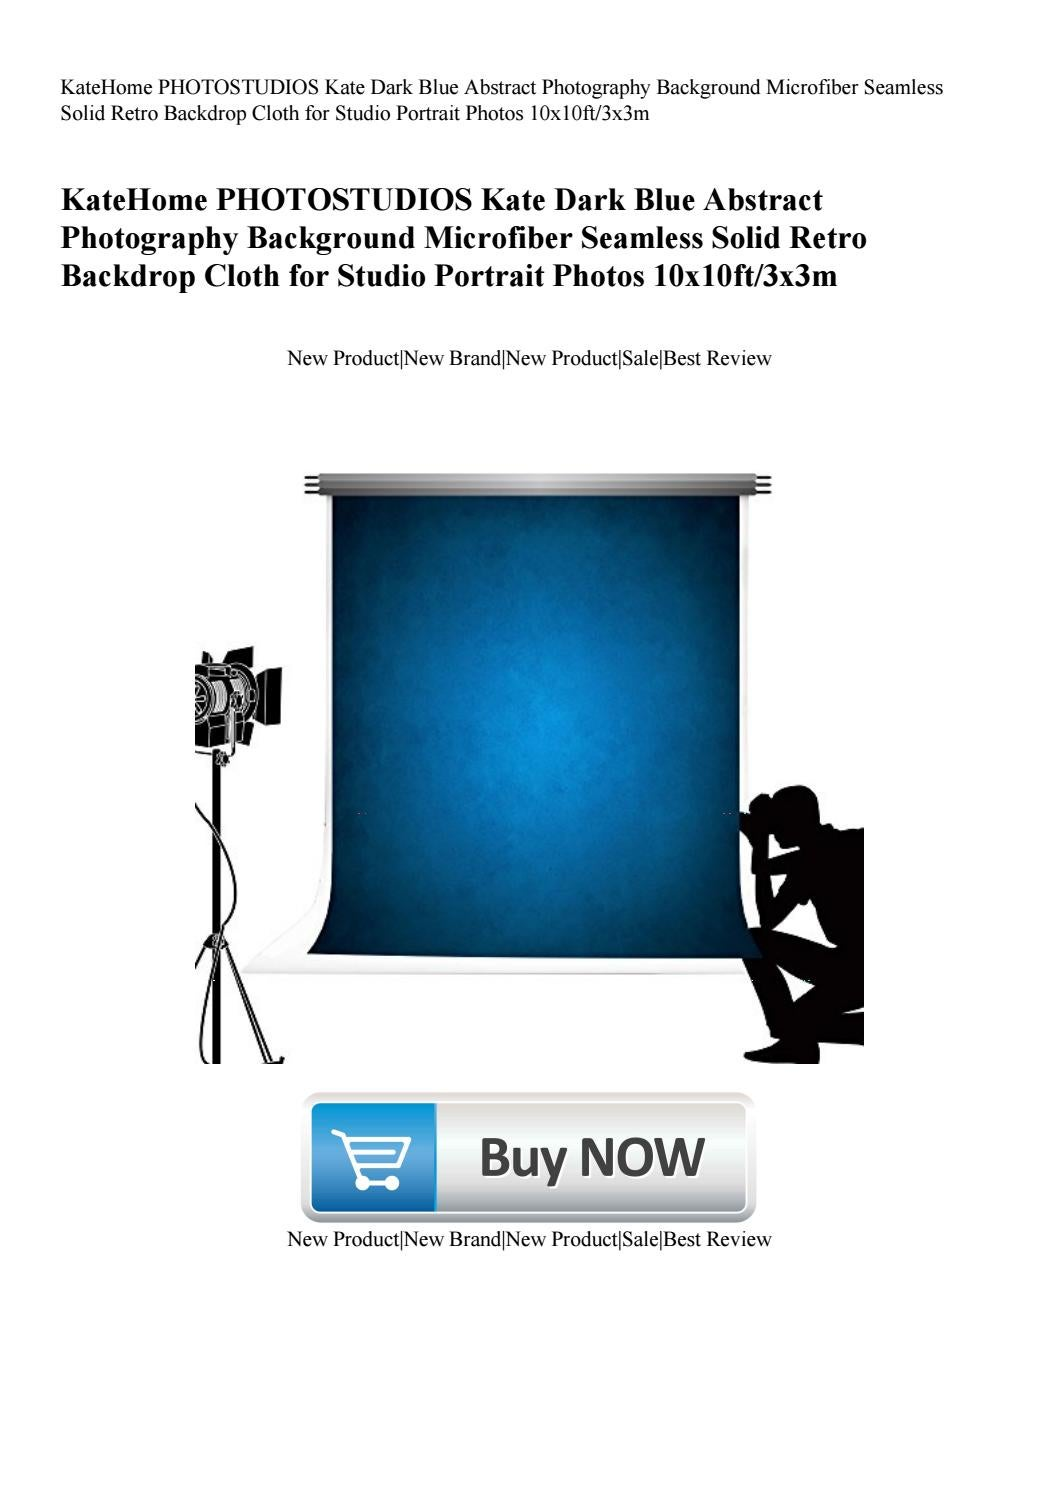 KateHome PHOTOSTUDIOS Kate Dark Blue Abstract Photography